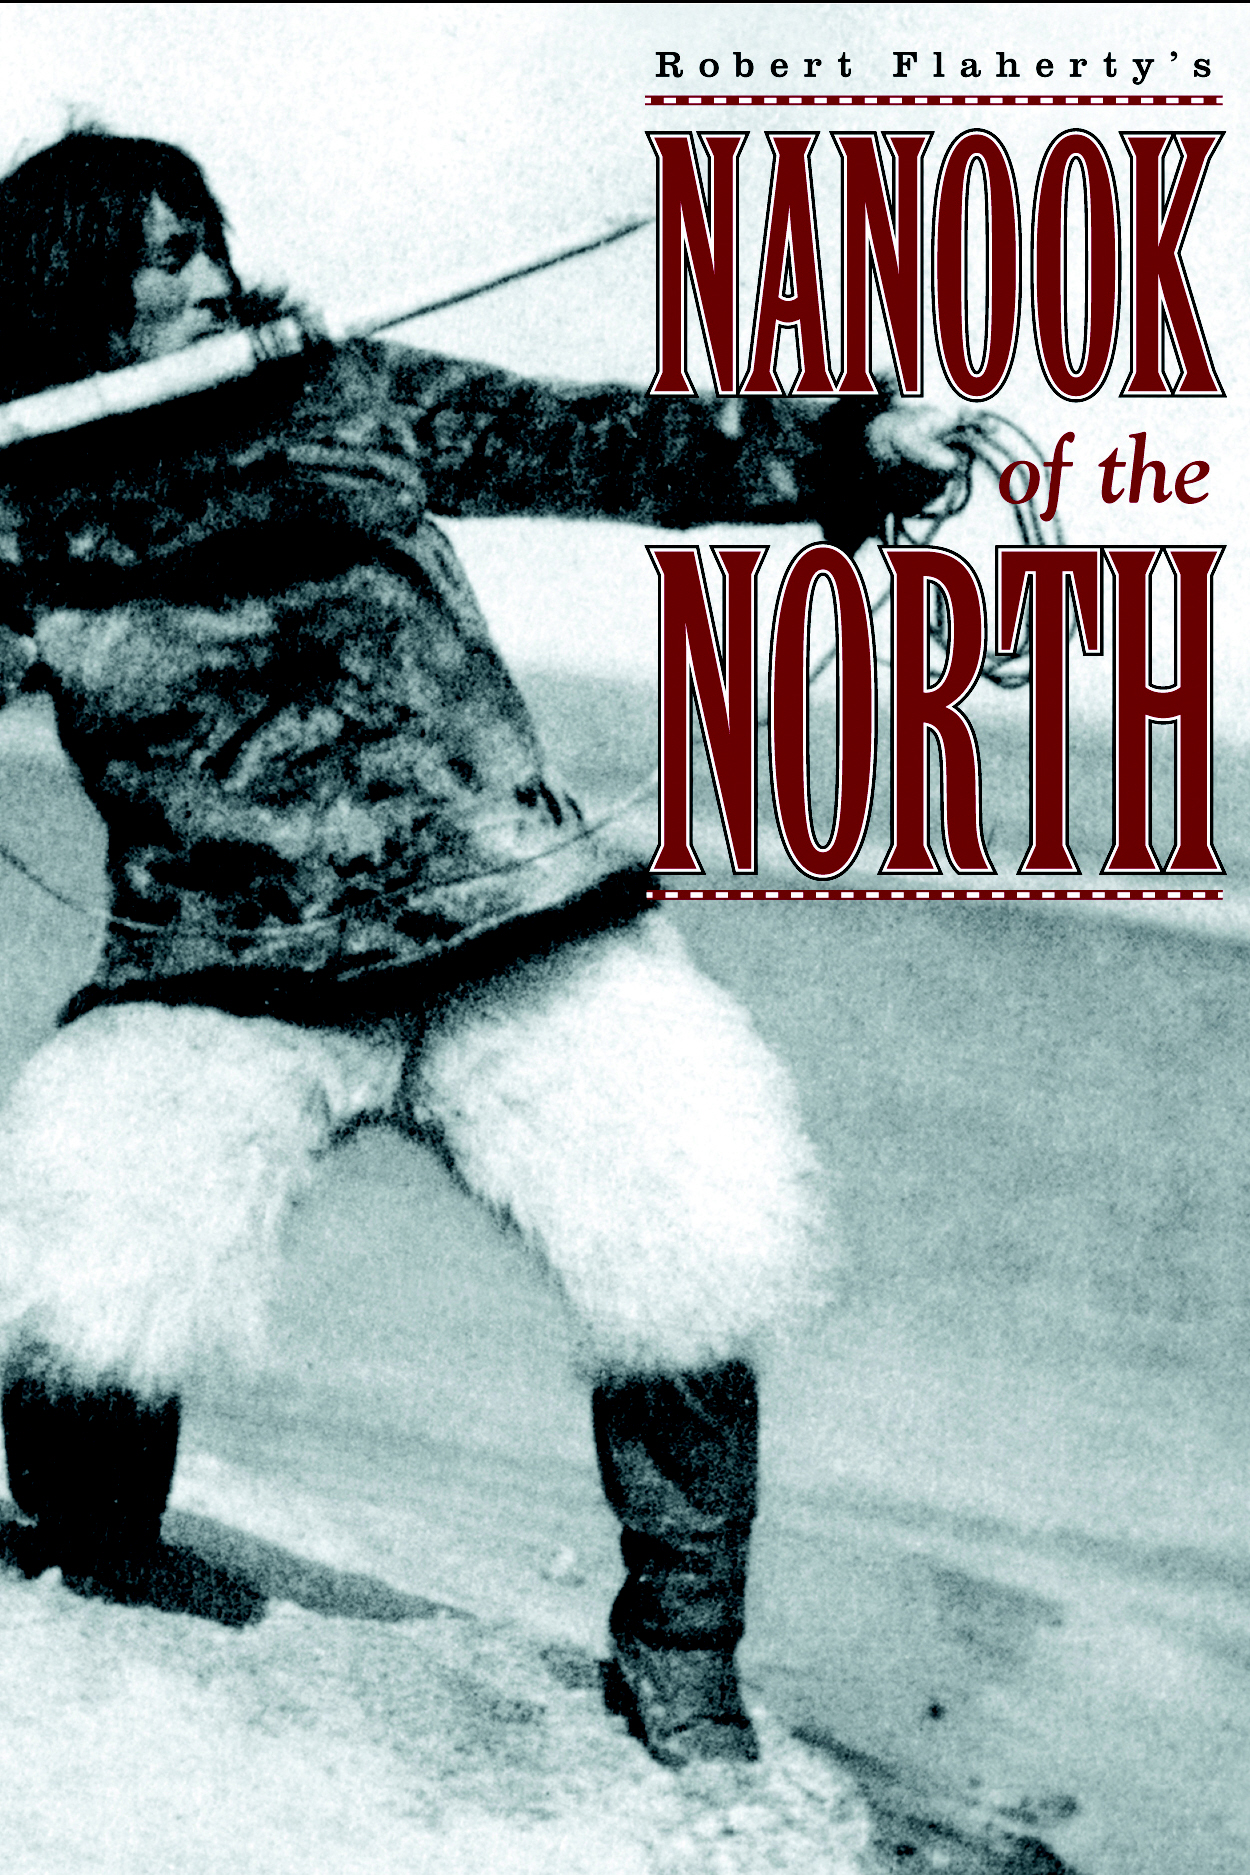 a literary analysis of nanook of the north by robert flaherty Robert flaherty's classic film tells the story of inuit hunter nanook and his family as they struggle to survive in the harsh conditions of canada's hudson bay region enormously popular when released in 1922, nanook of the north is a cinematic milestone that continues to enchant audiences.